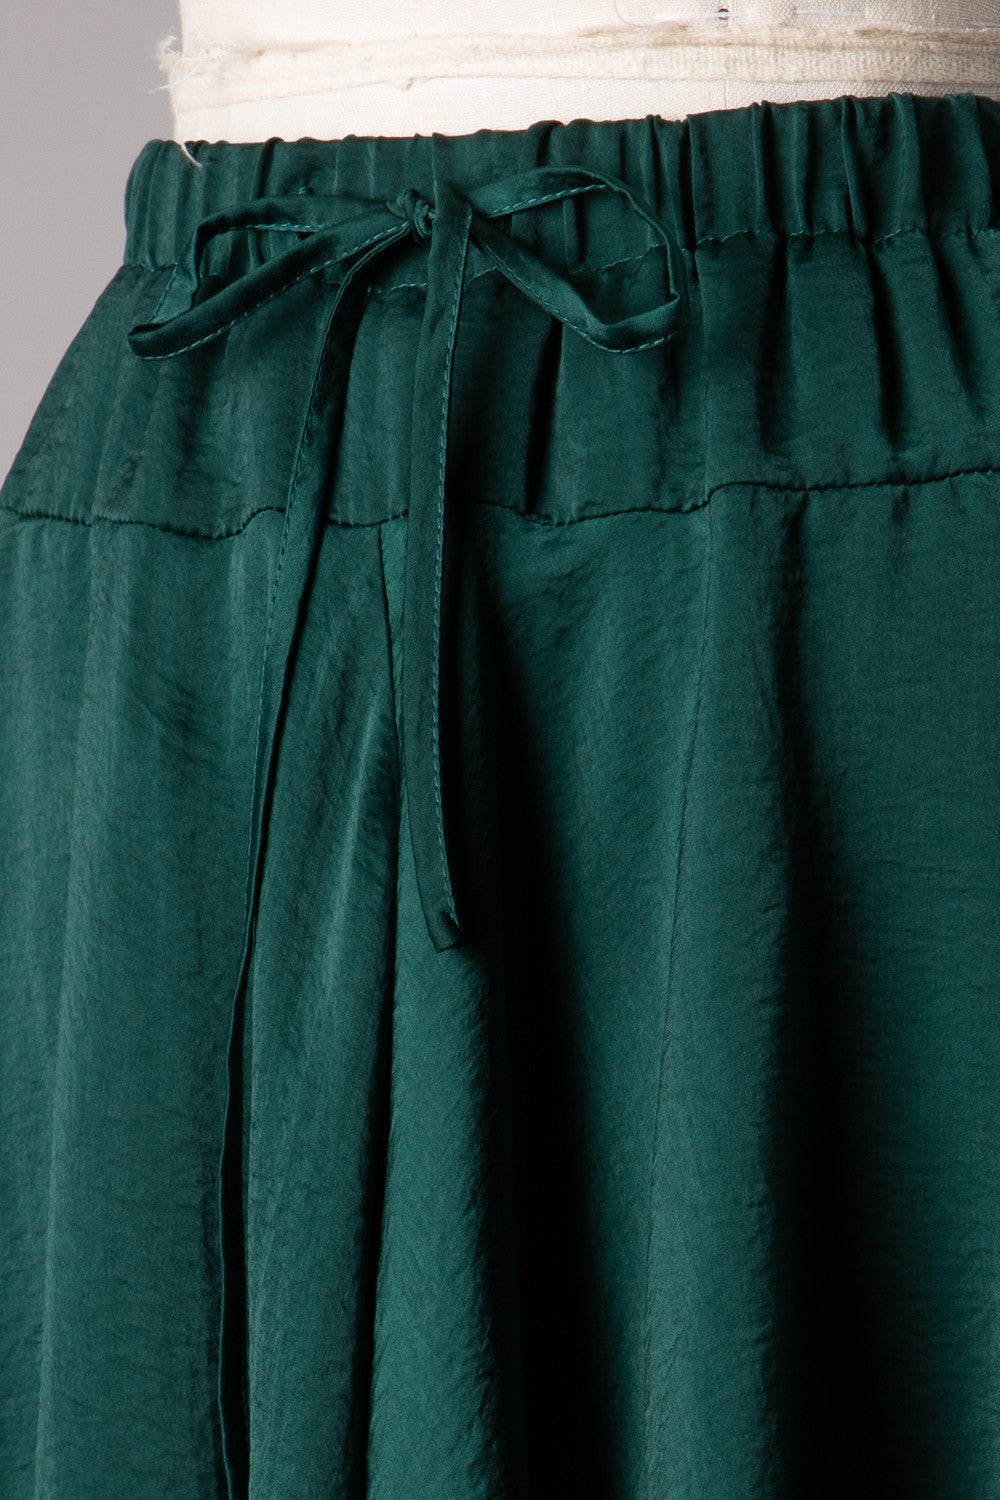 Satin Elastic Waist Shorts (Emerald)